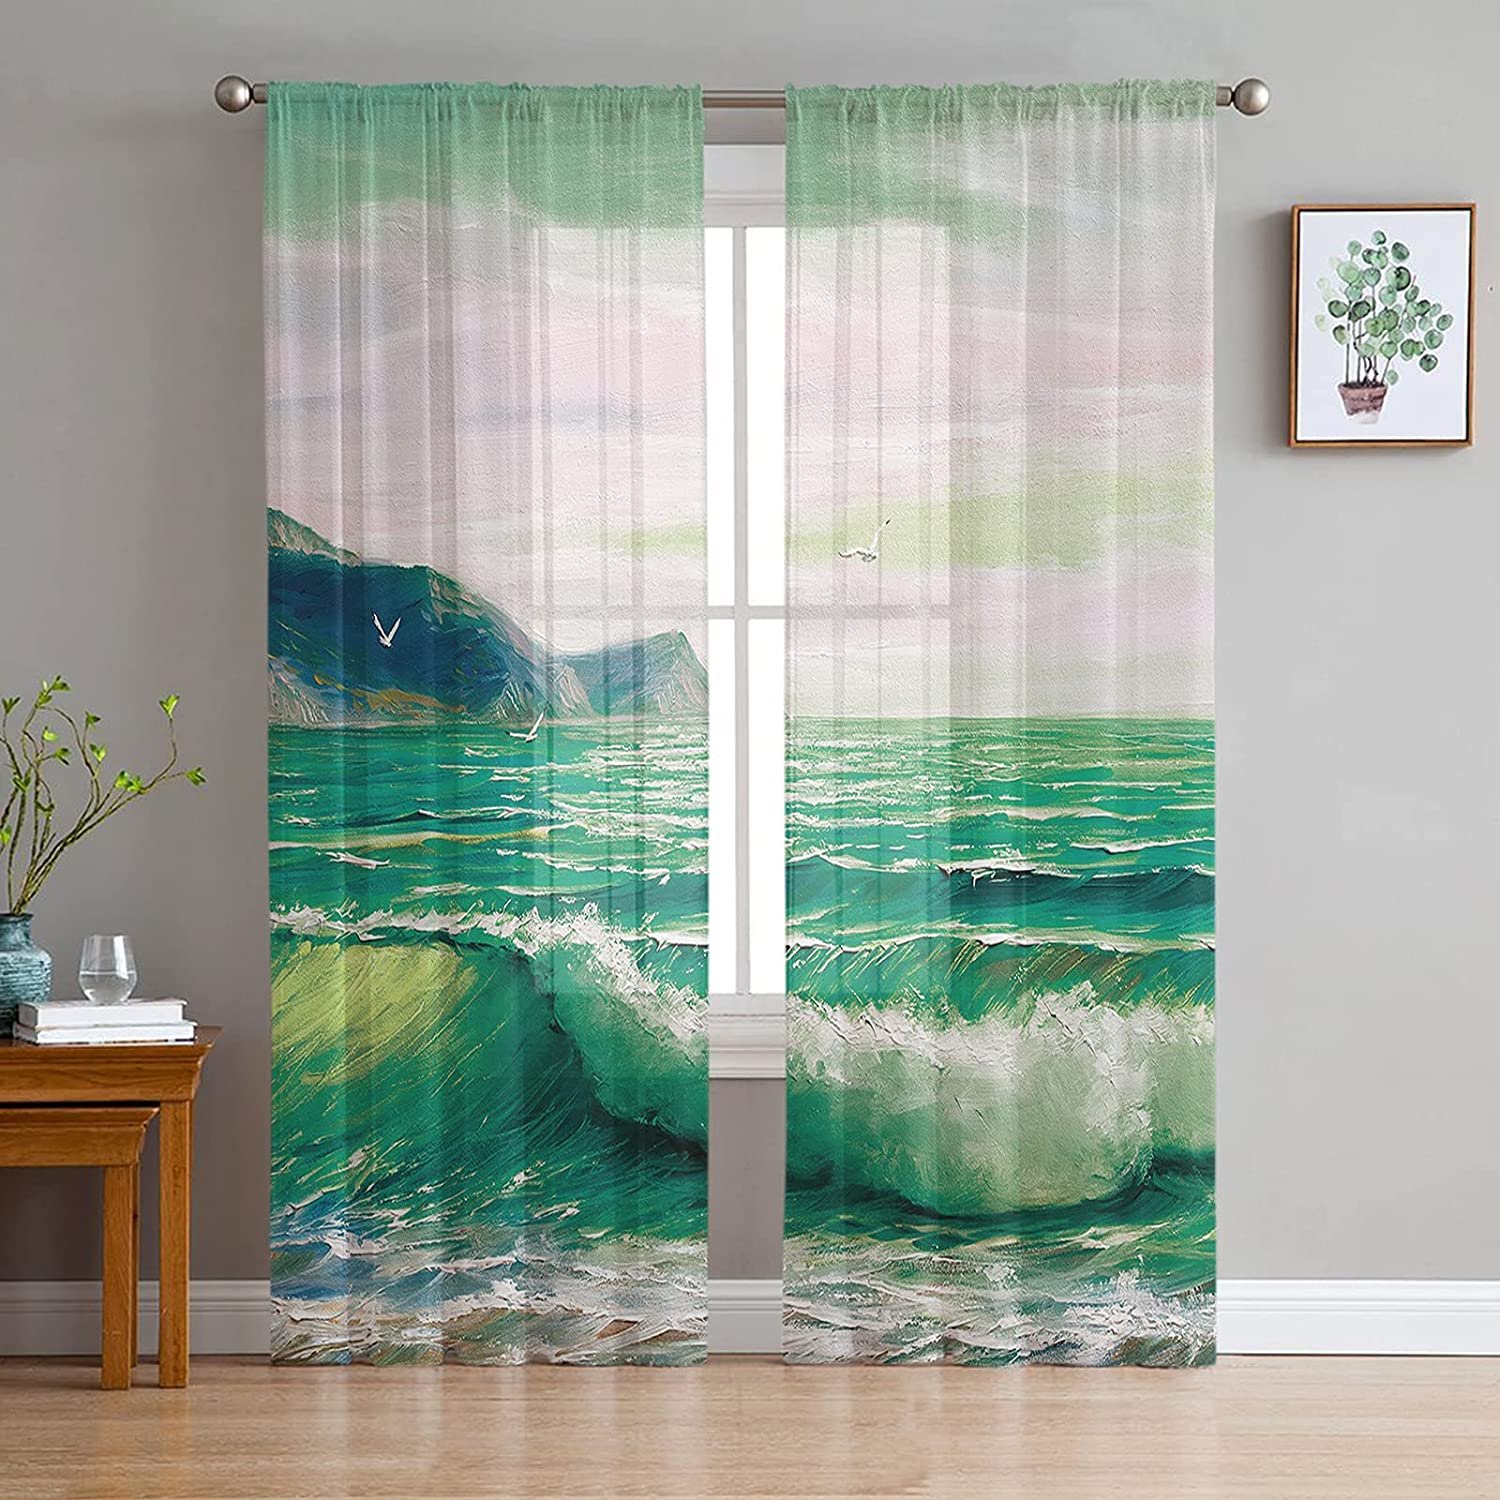 2 Panels Inventory cleanup selling sale Sheer Voile Superior Rod Pocket Summer Ocean Green Curtain Beach